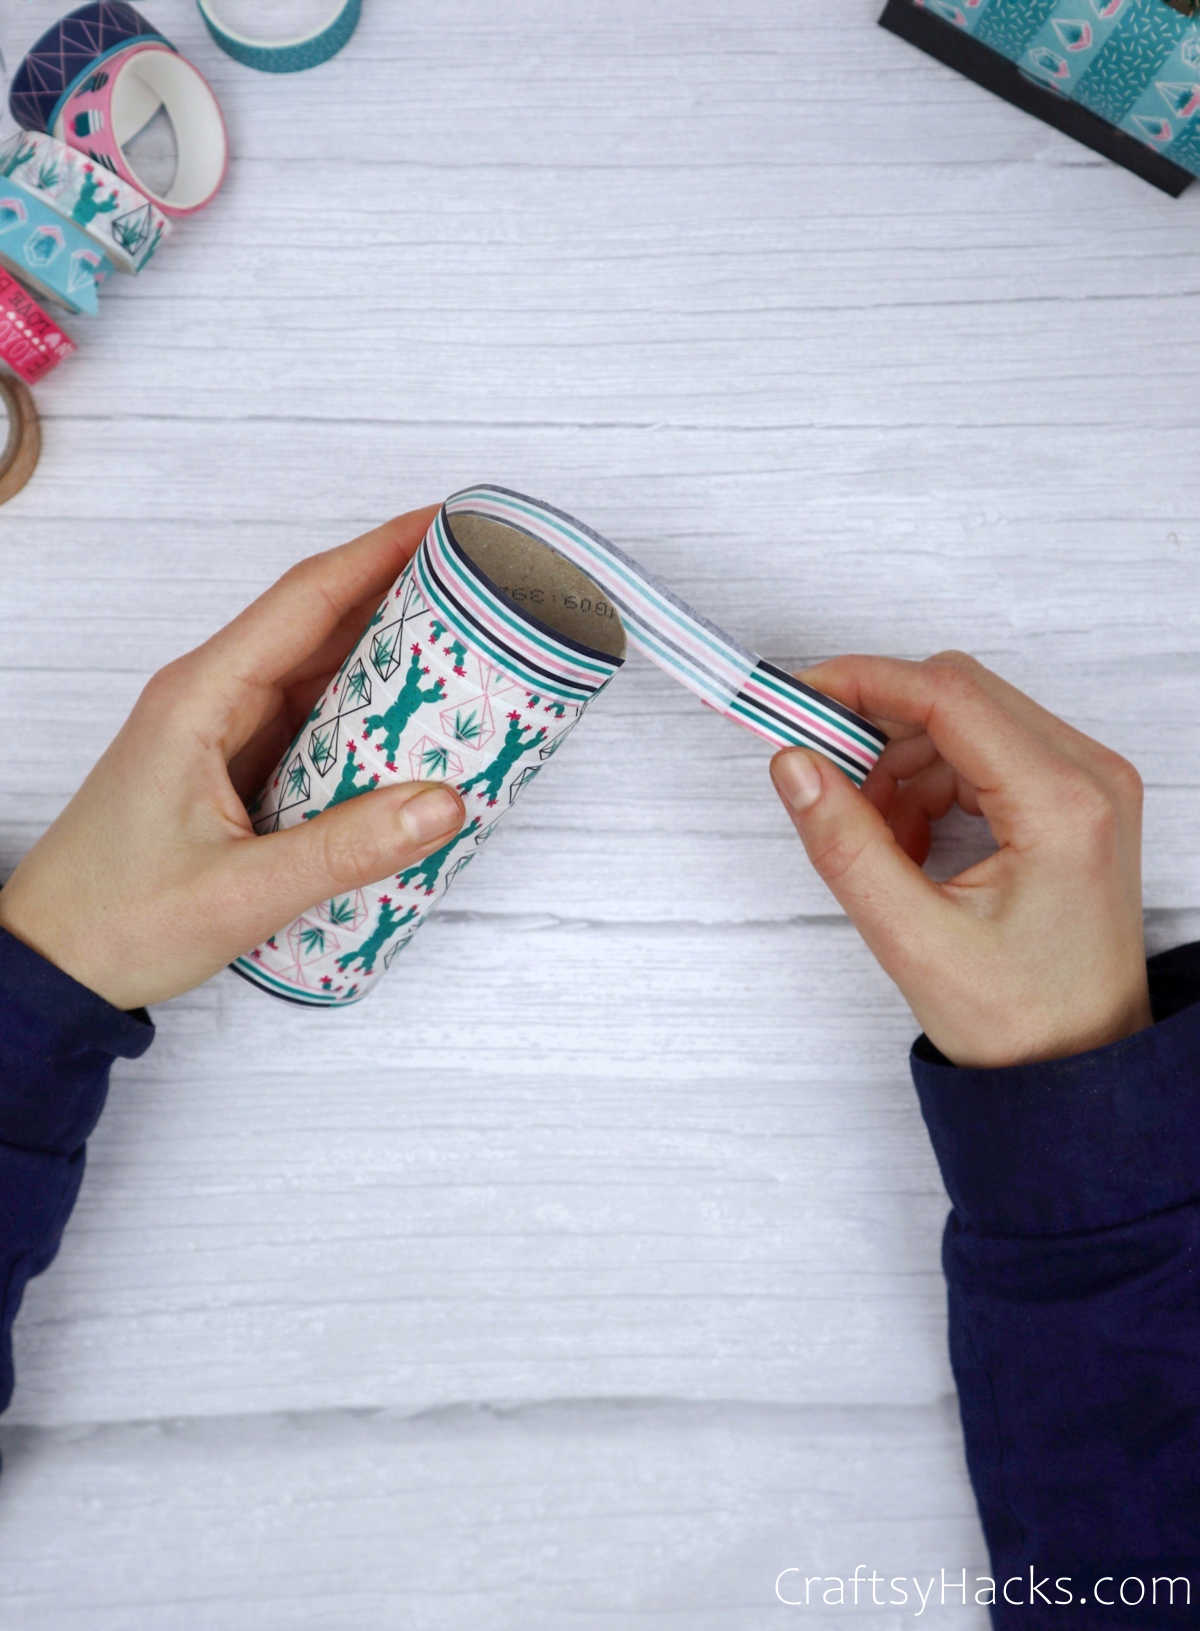 wrapping edges with washi tape